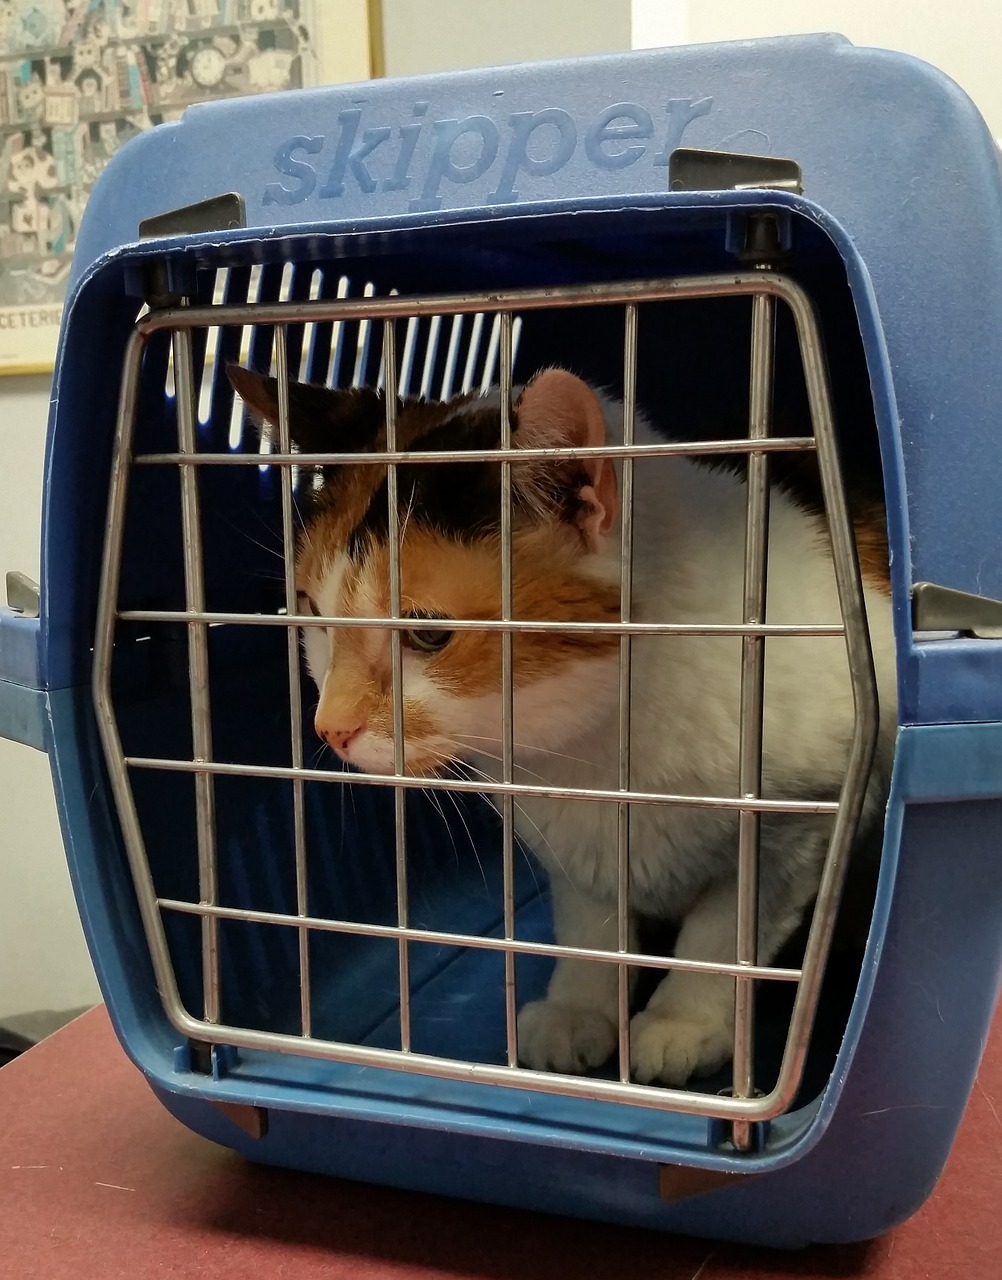 Transport your pets in a carrier to keep them safe during an emergency evacuation. TiresAndTails.com